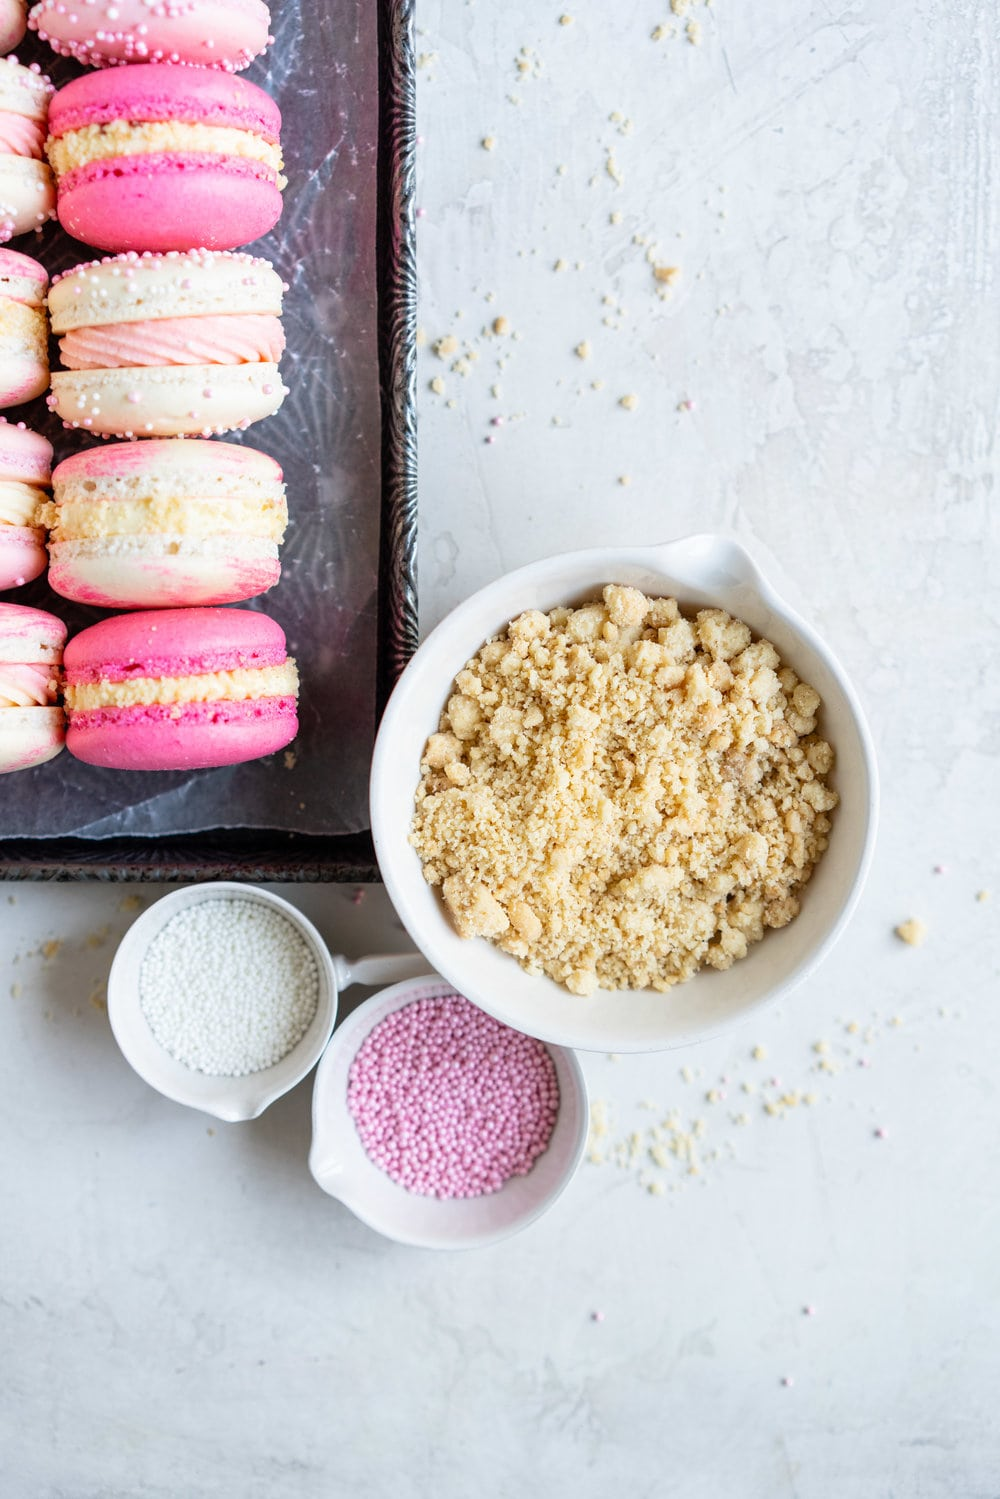 Strawberry shortcake macarons - French Macaron shells are filled with a strawberry filling, cream cheese german buttercream, and finished with a brown butter pie crumb crunch. These encompass summer in every bite. #strawberryshortcake #piecrumb #strawberrymacaron